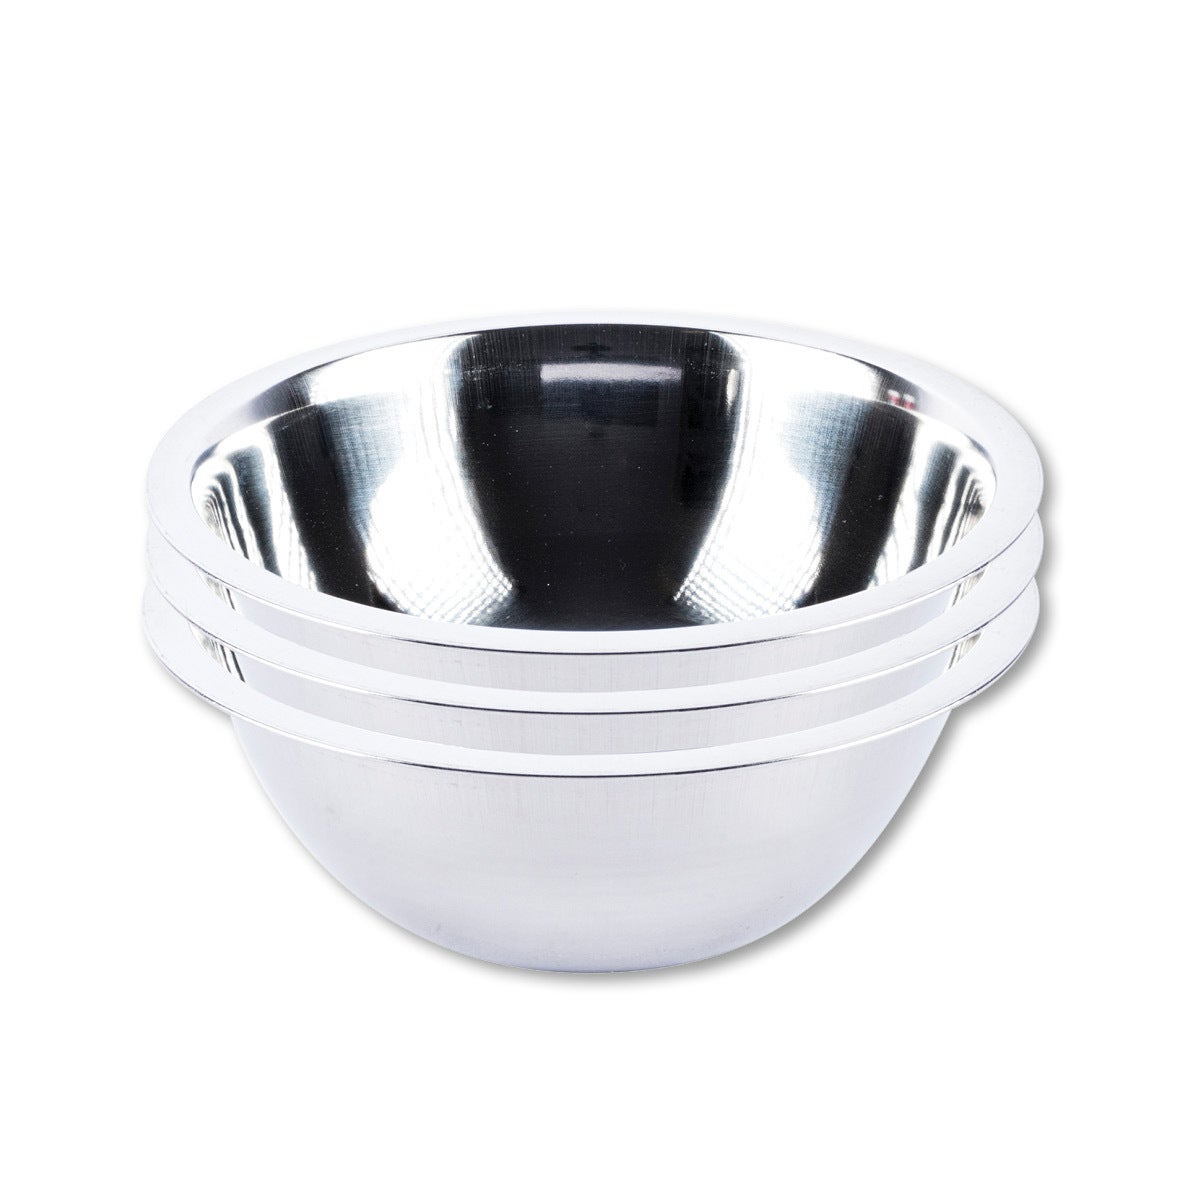 Home Master® 3PCE Mixing Bowls Stainless Steel 20CM Dishwasher Safe Lightweight